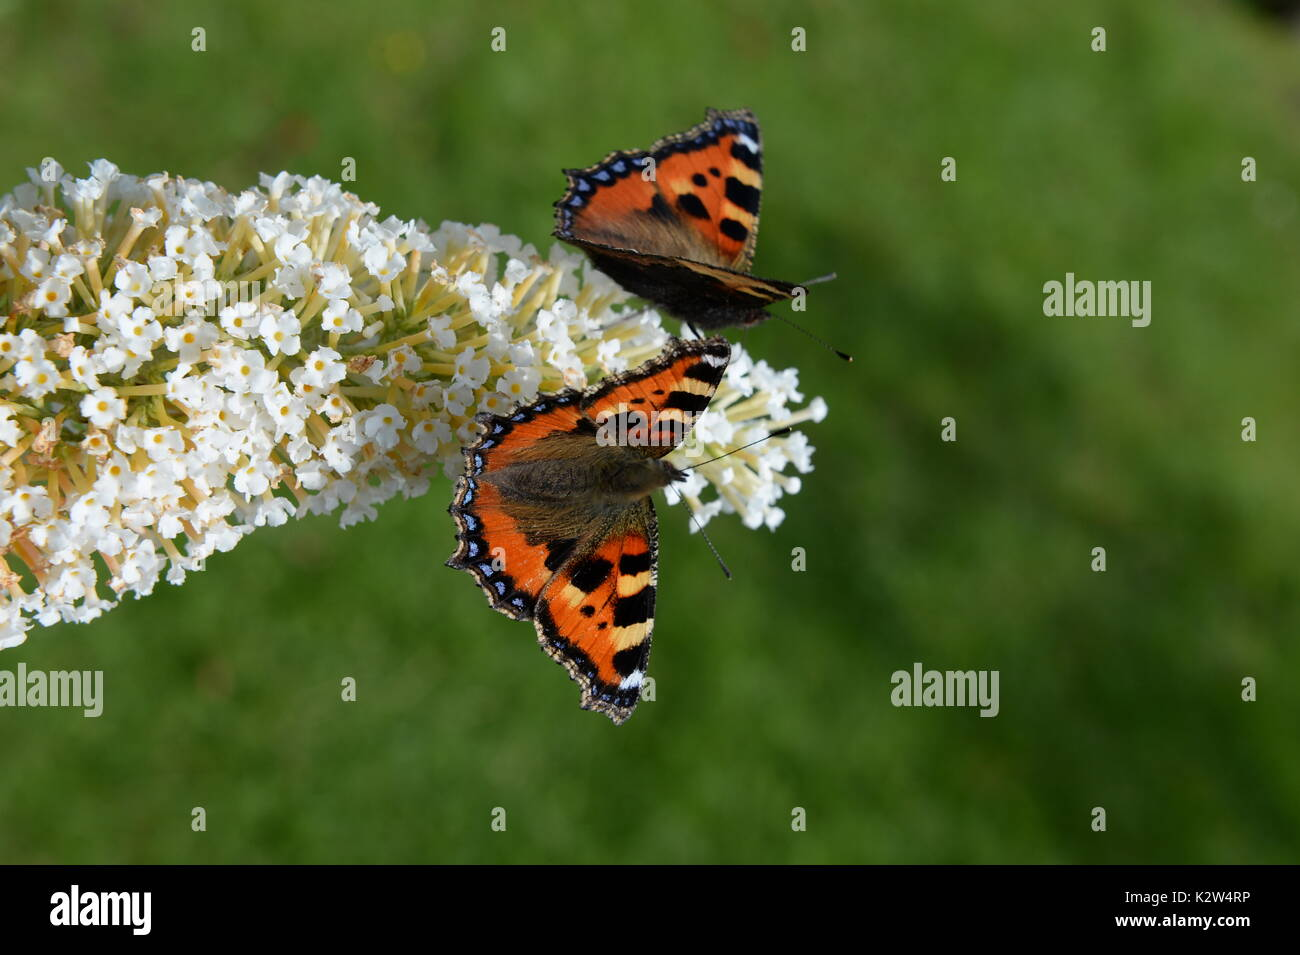 two small tortoiseshell butterflies on the butterfly bush -buddleia - Stock Image